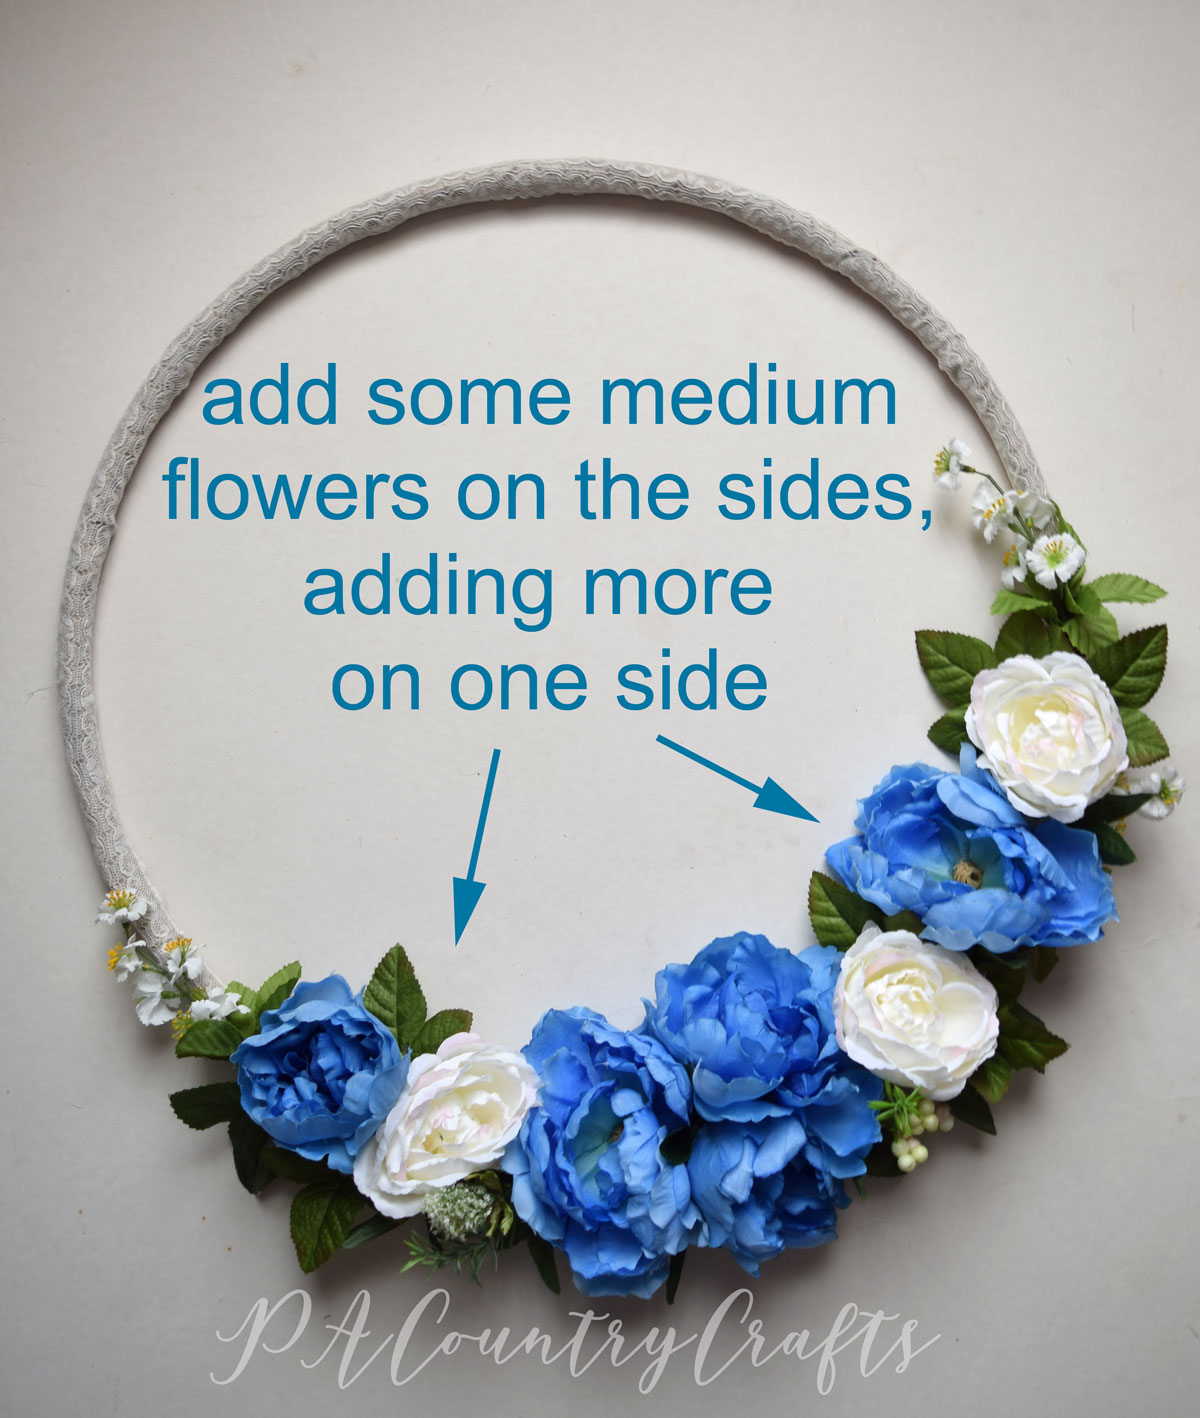 adding-flowers-to-a-hoop-wreath.jpg